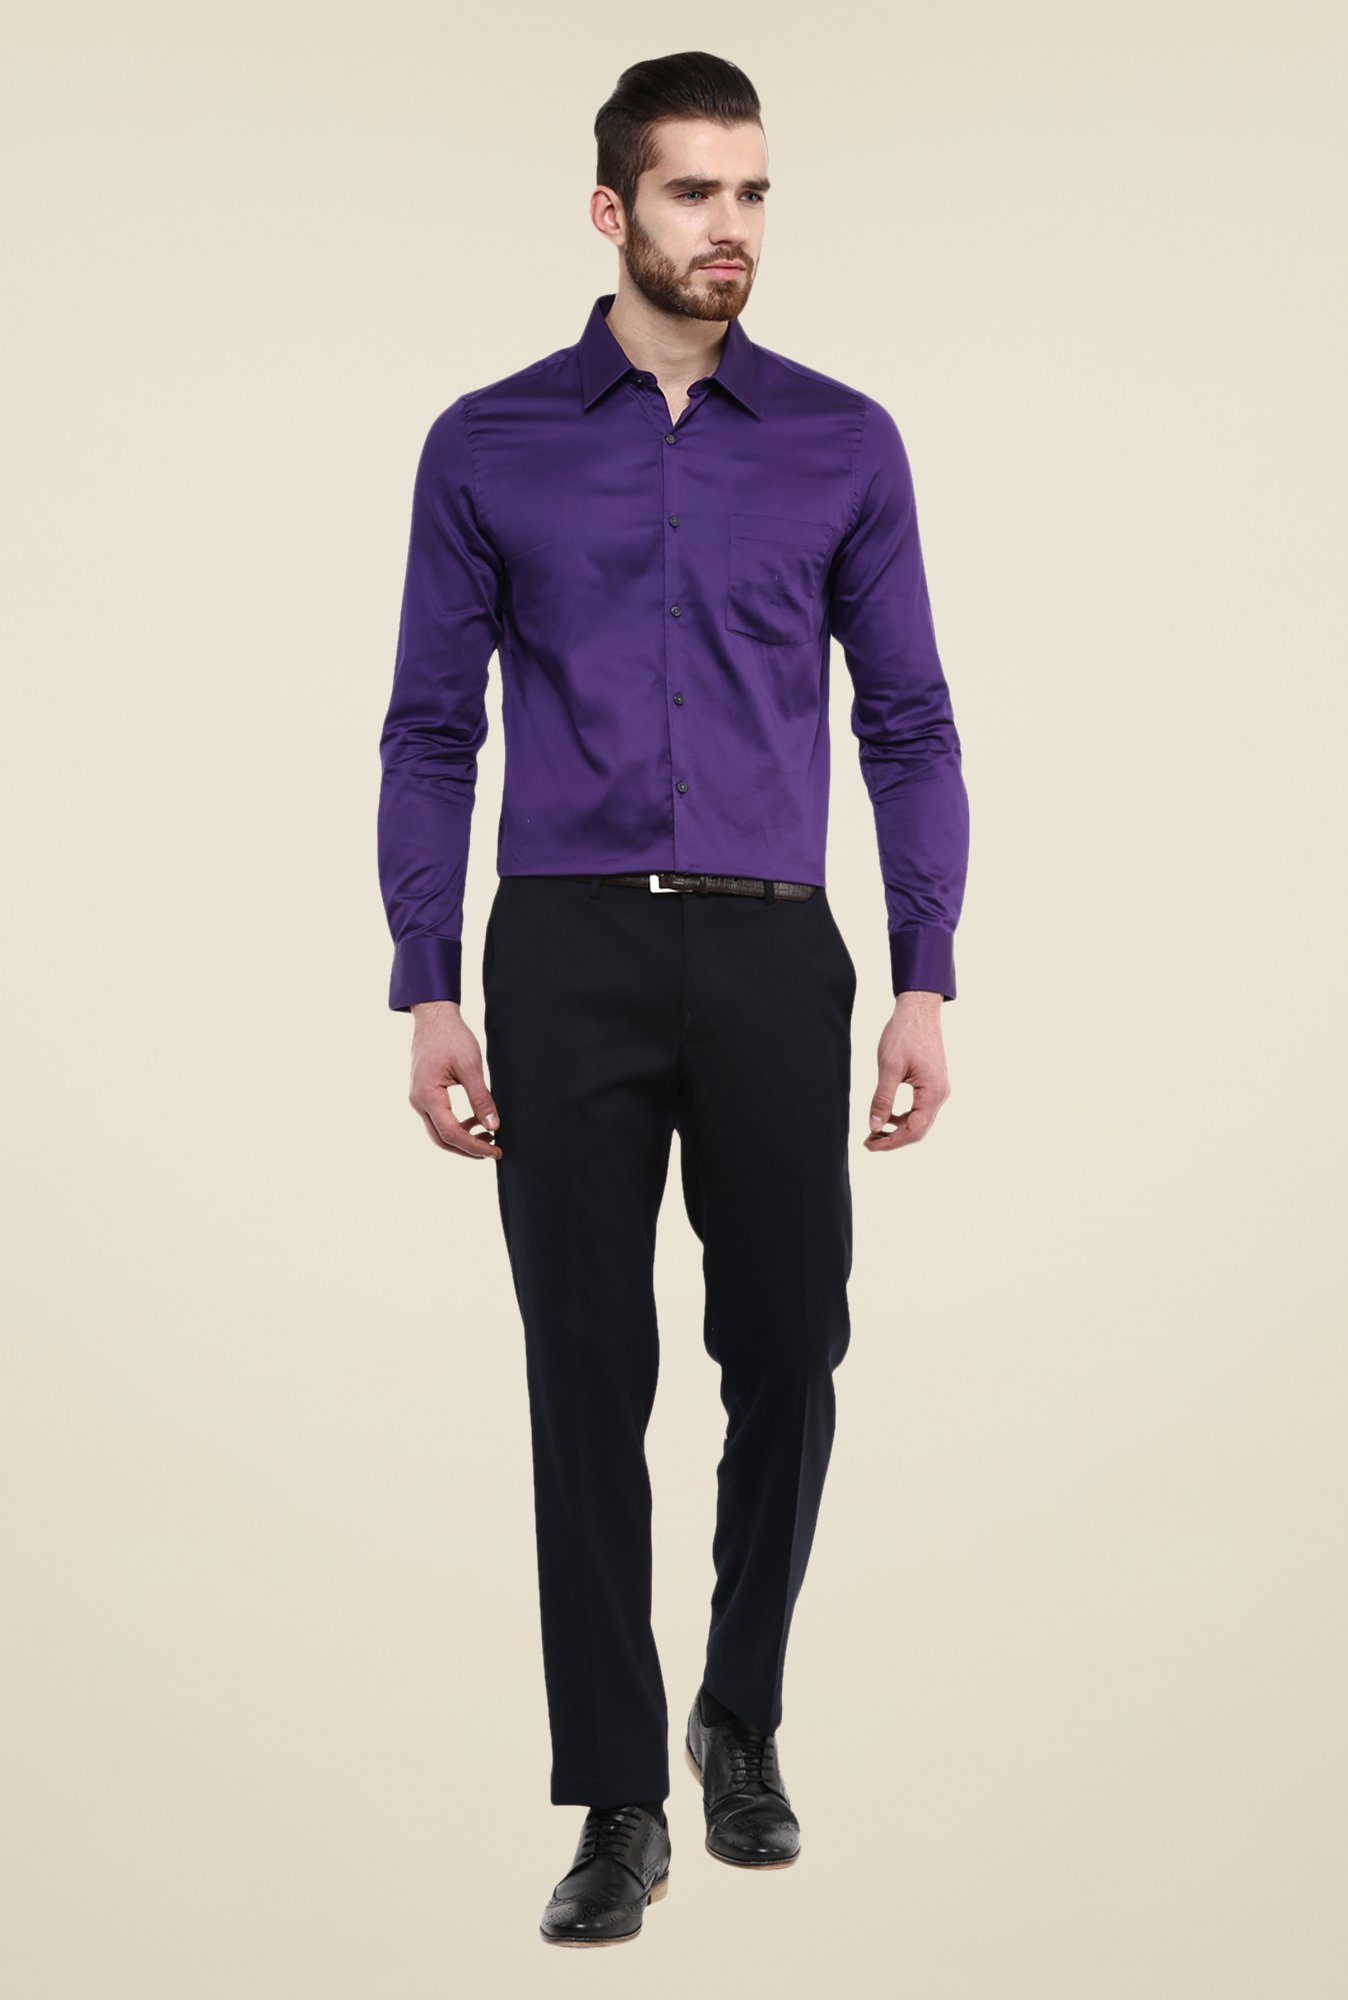 Turtle Purple Solid Shirt